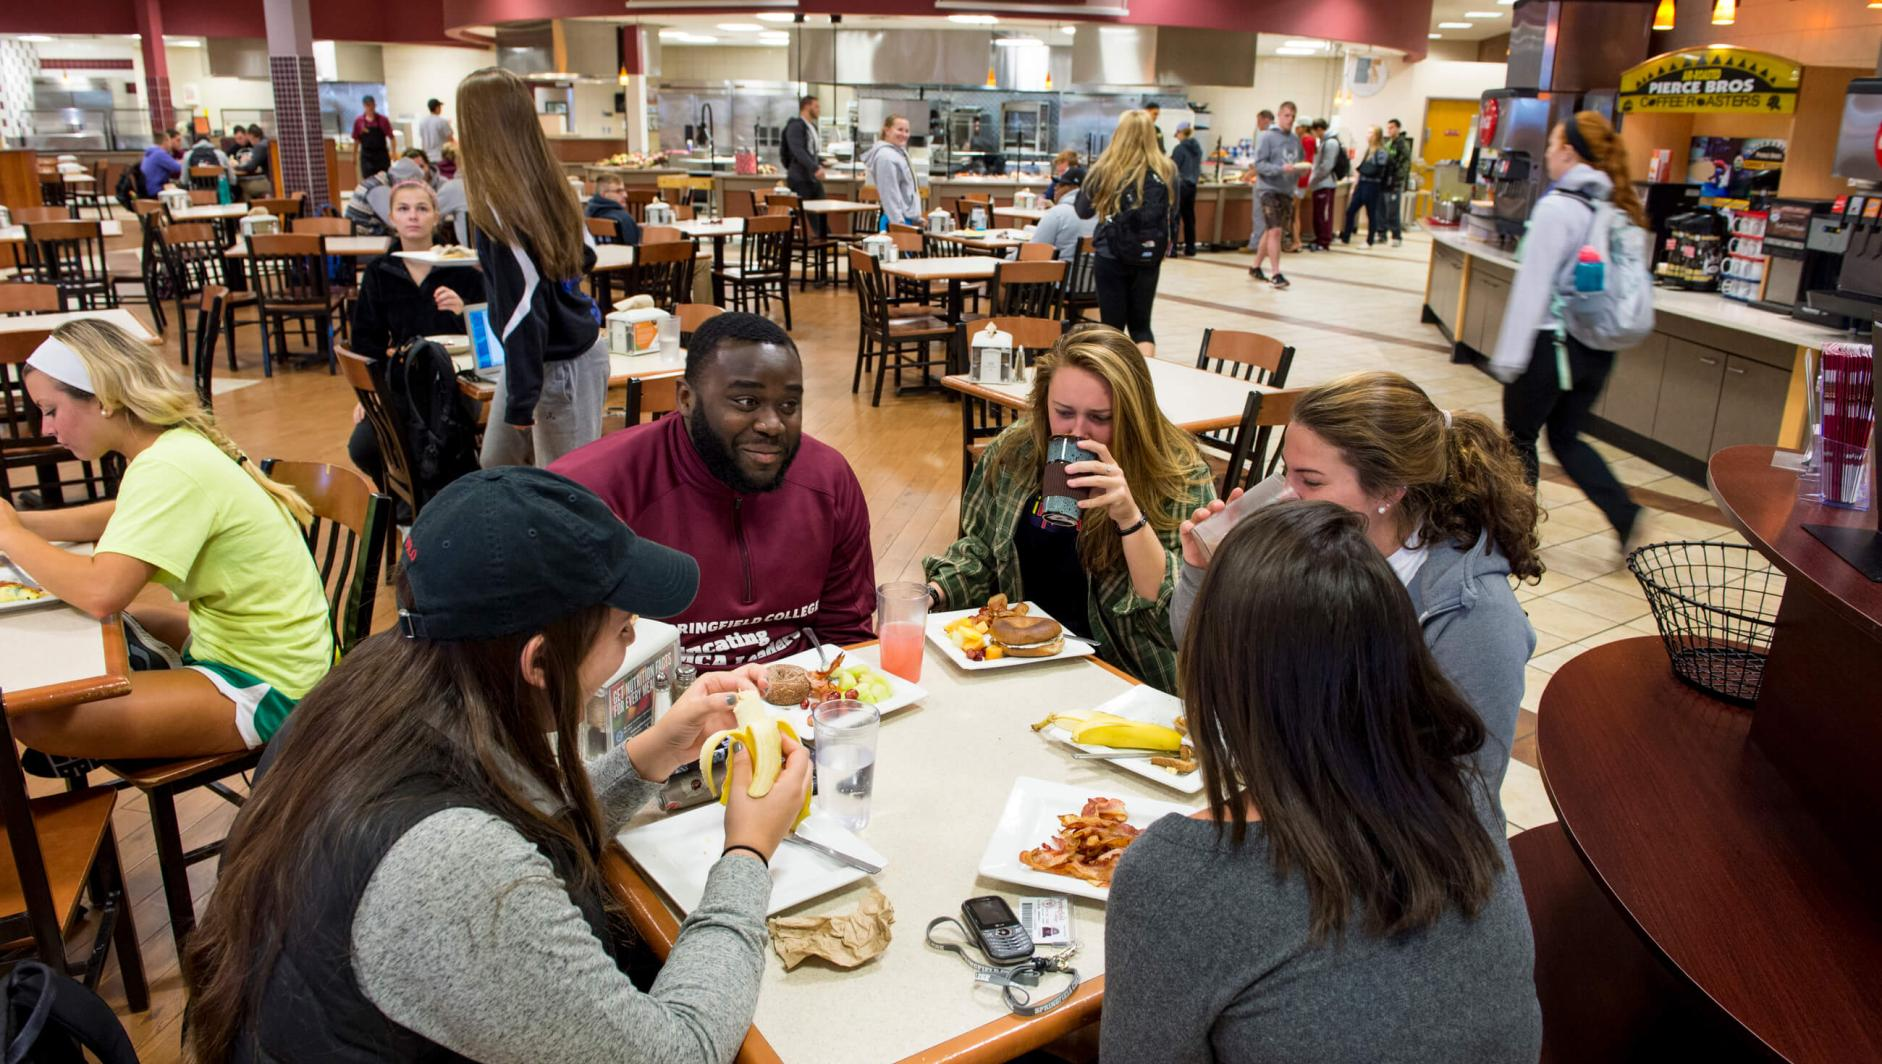 Students eating in Cheney Dining Hall.